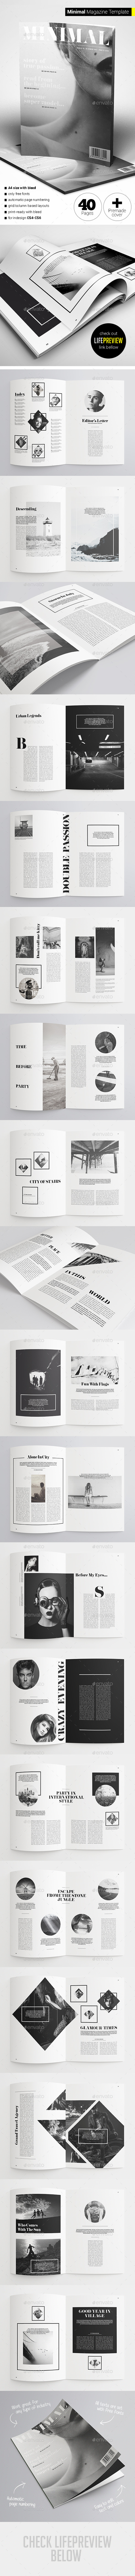 GraphicRiver 40 Pages Minimal Magazine 11842734